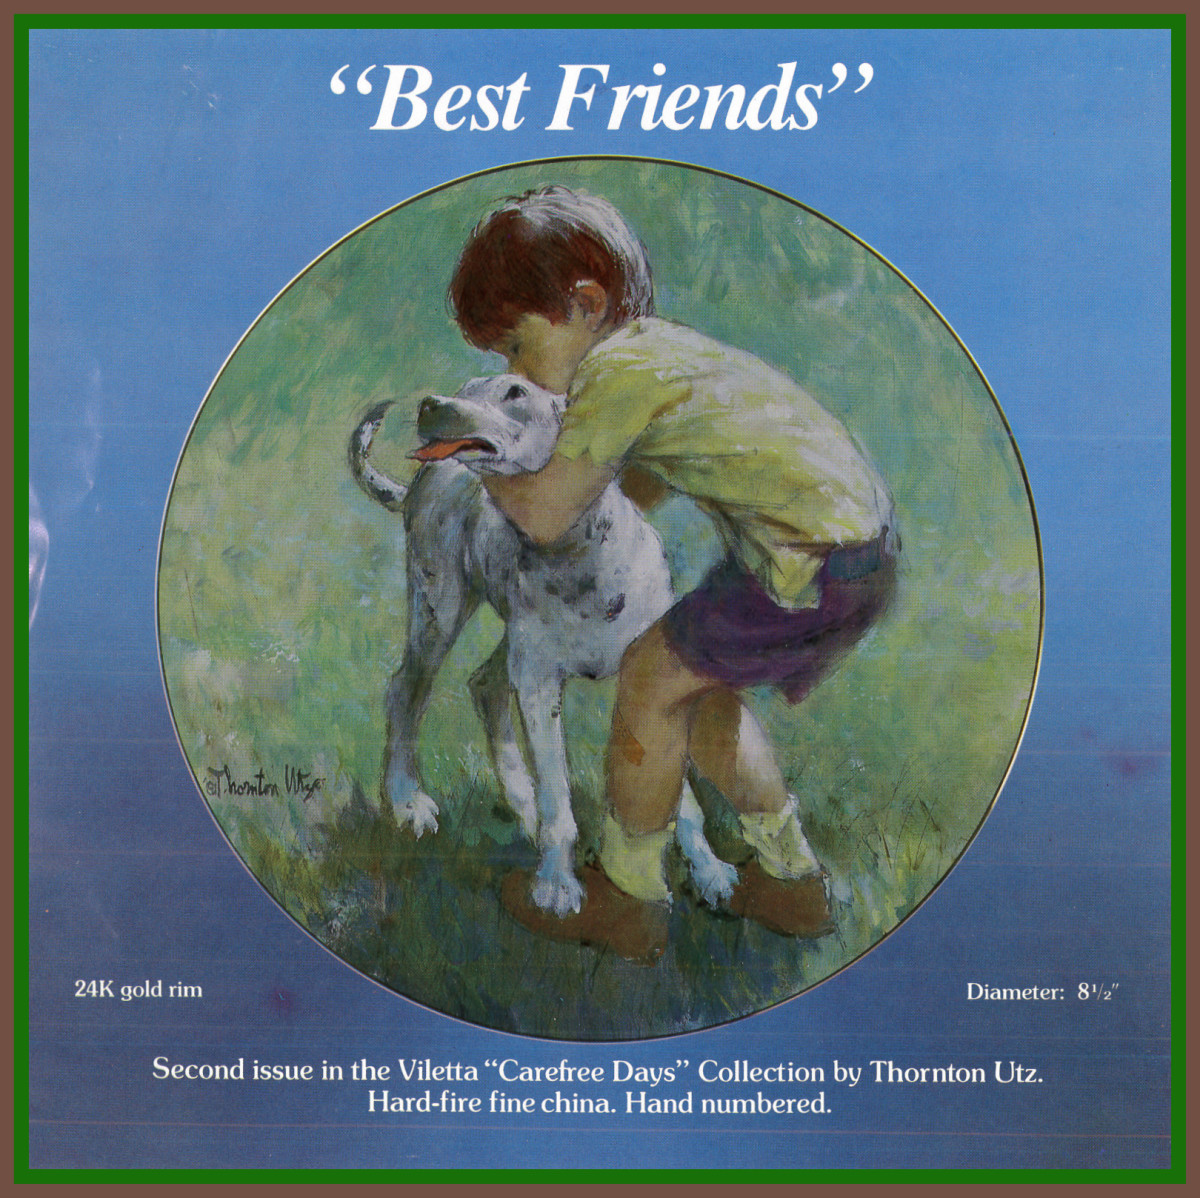 """Best Friends"" was the second issue in the Viletta ""Carefree Days"" Collection by Thornton Utz. Hard-fired fine china, and Hand numbered with 24k gold rim."